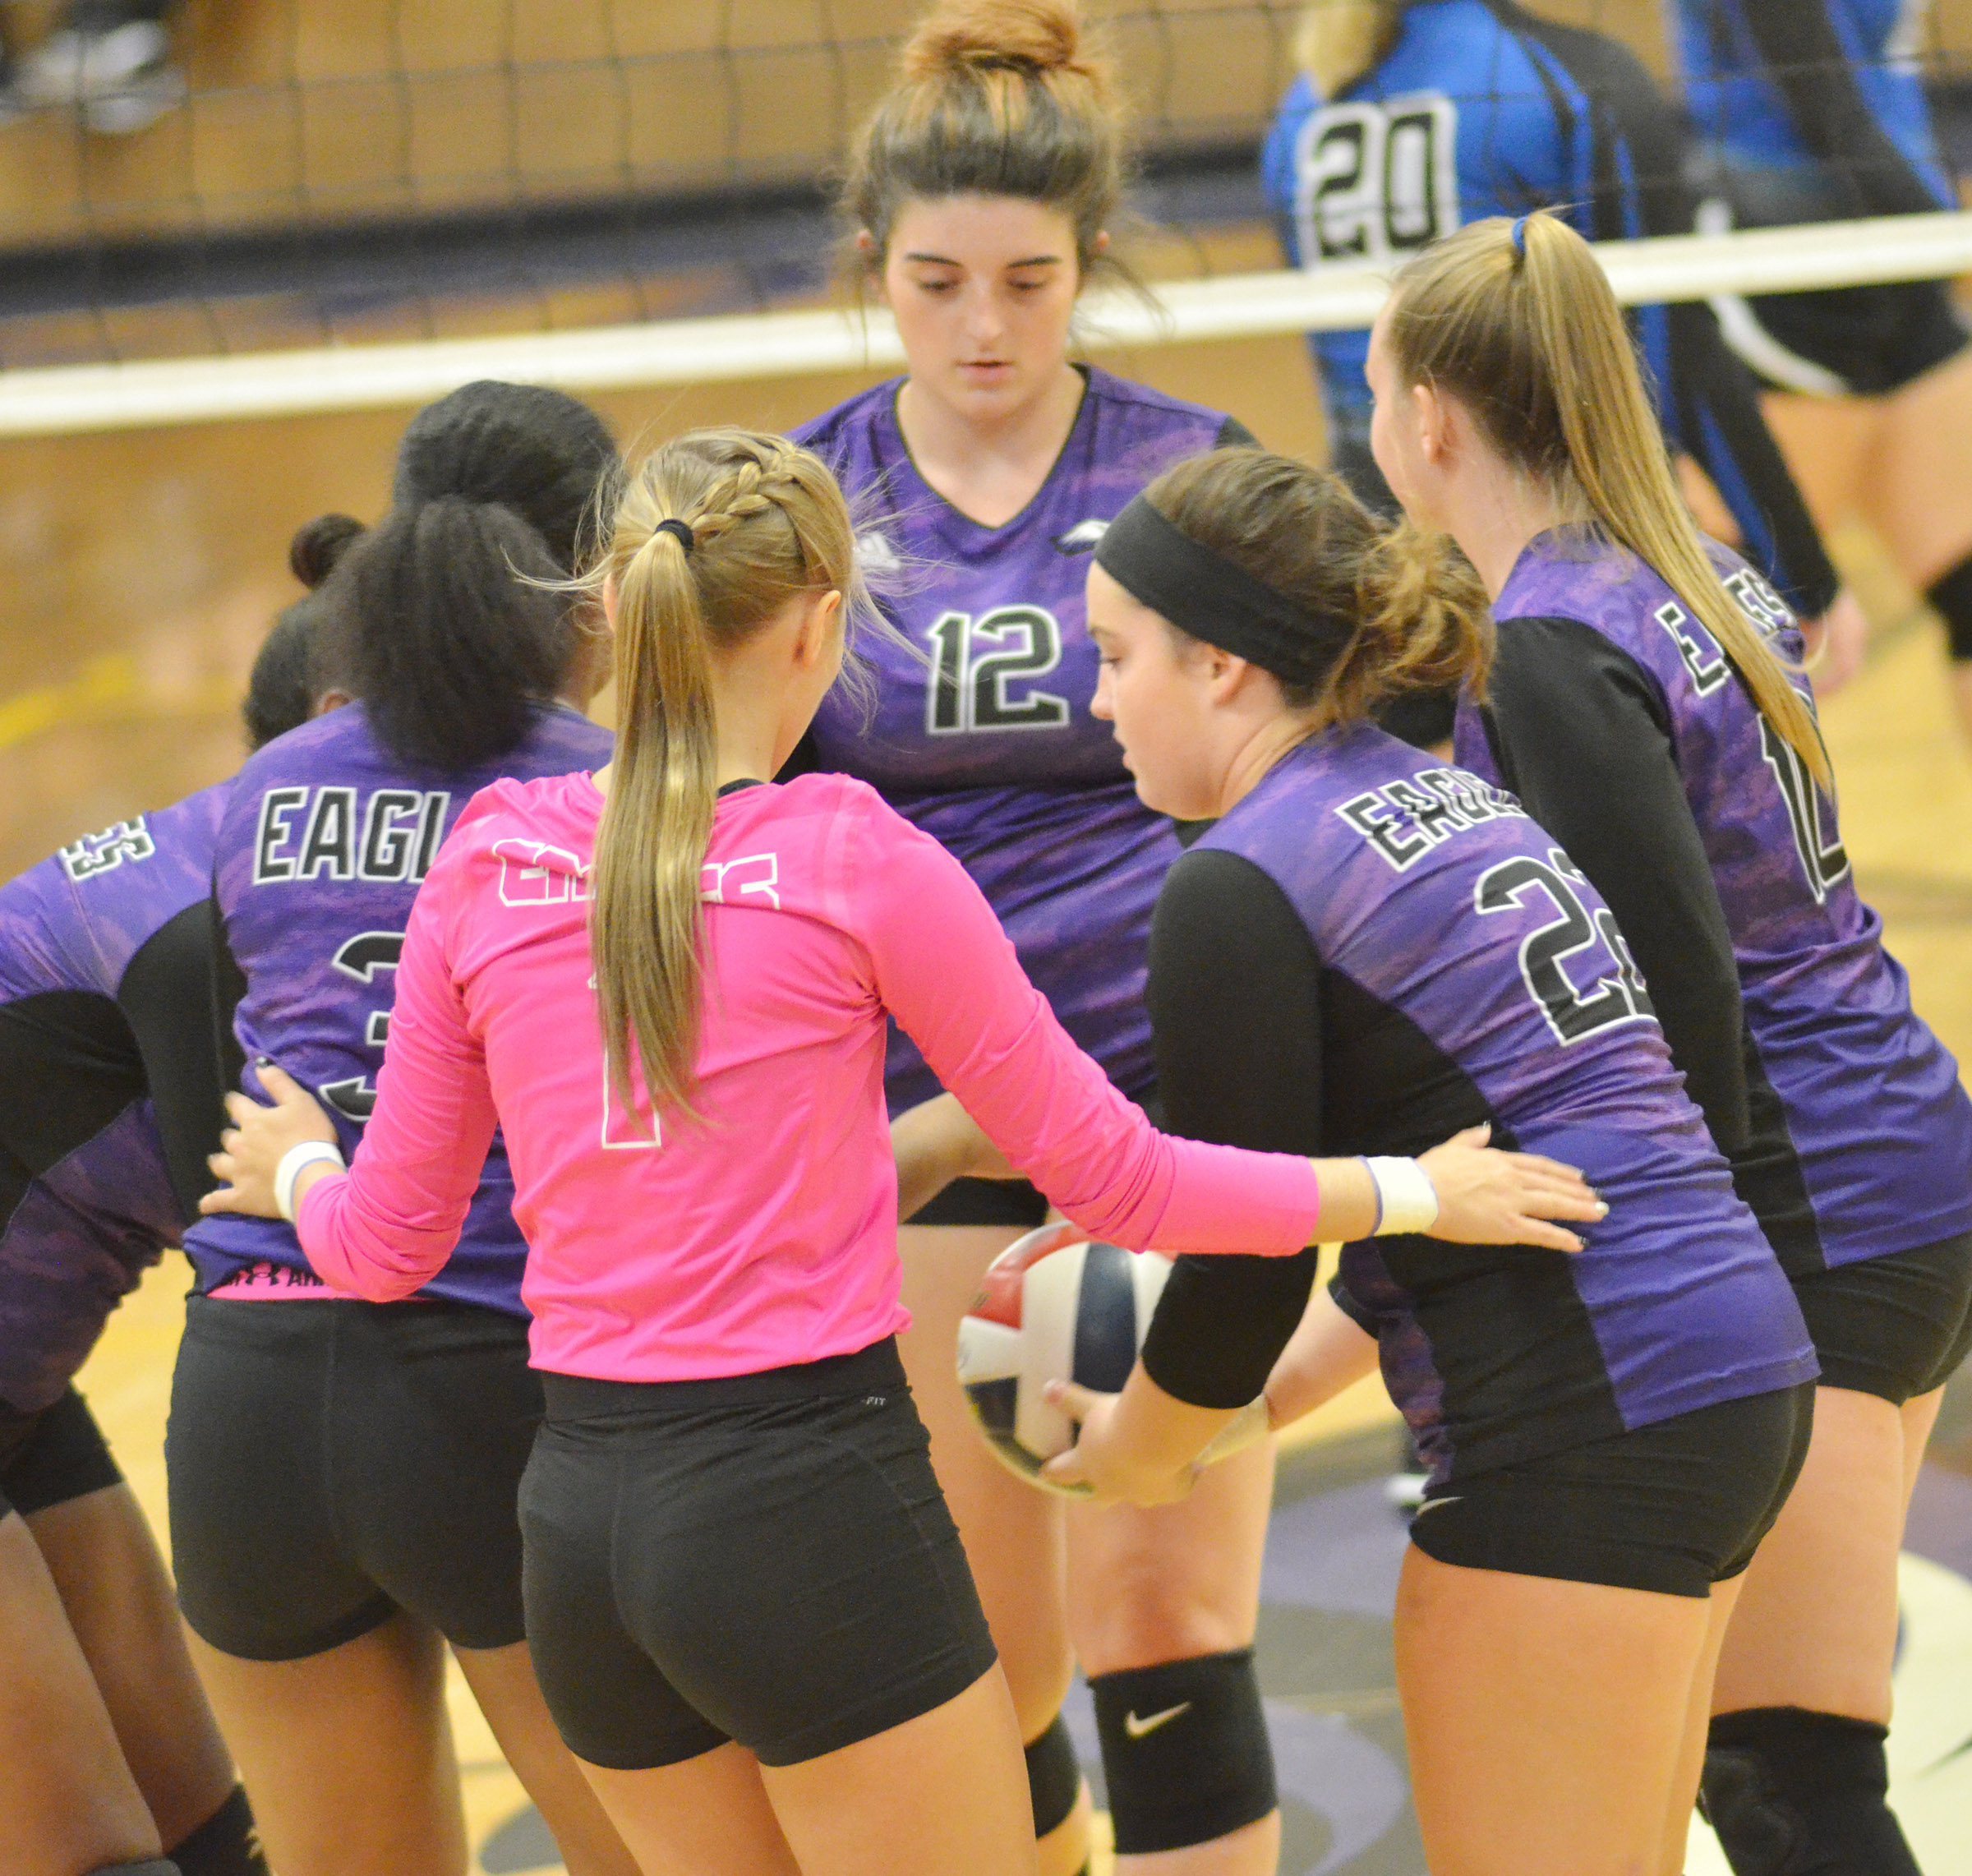 CHS volleyball players huddle before the varsity game.